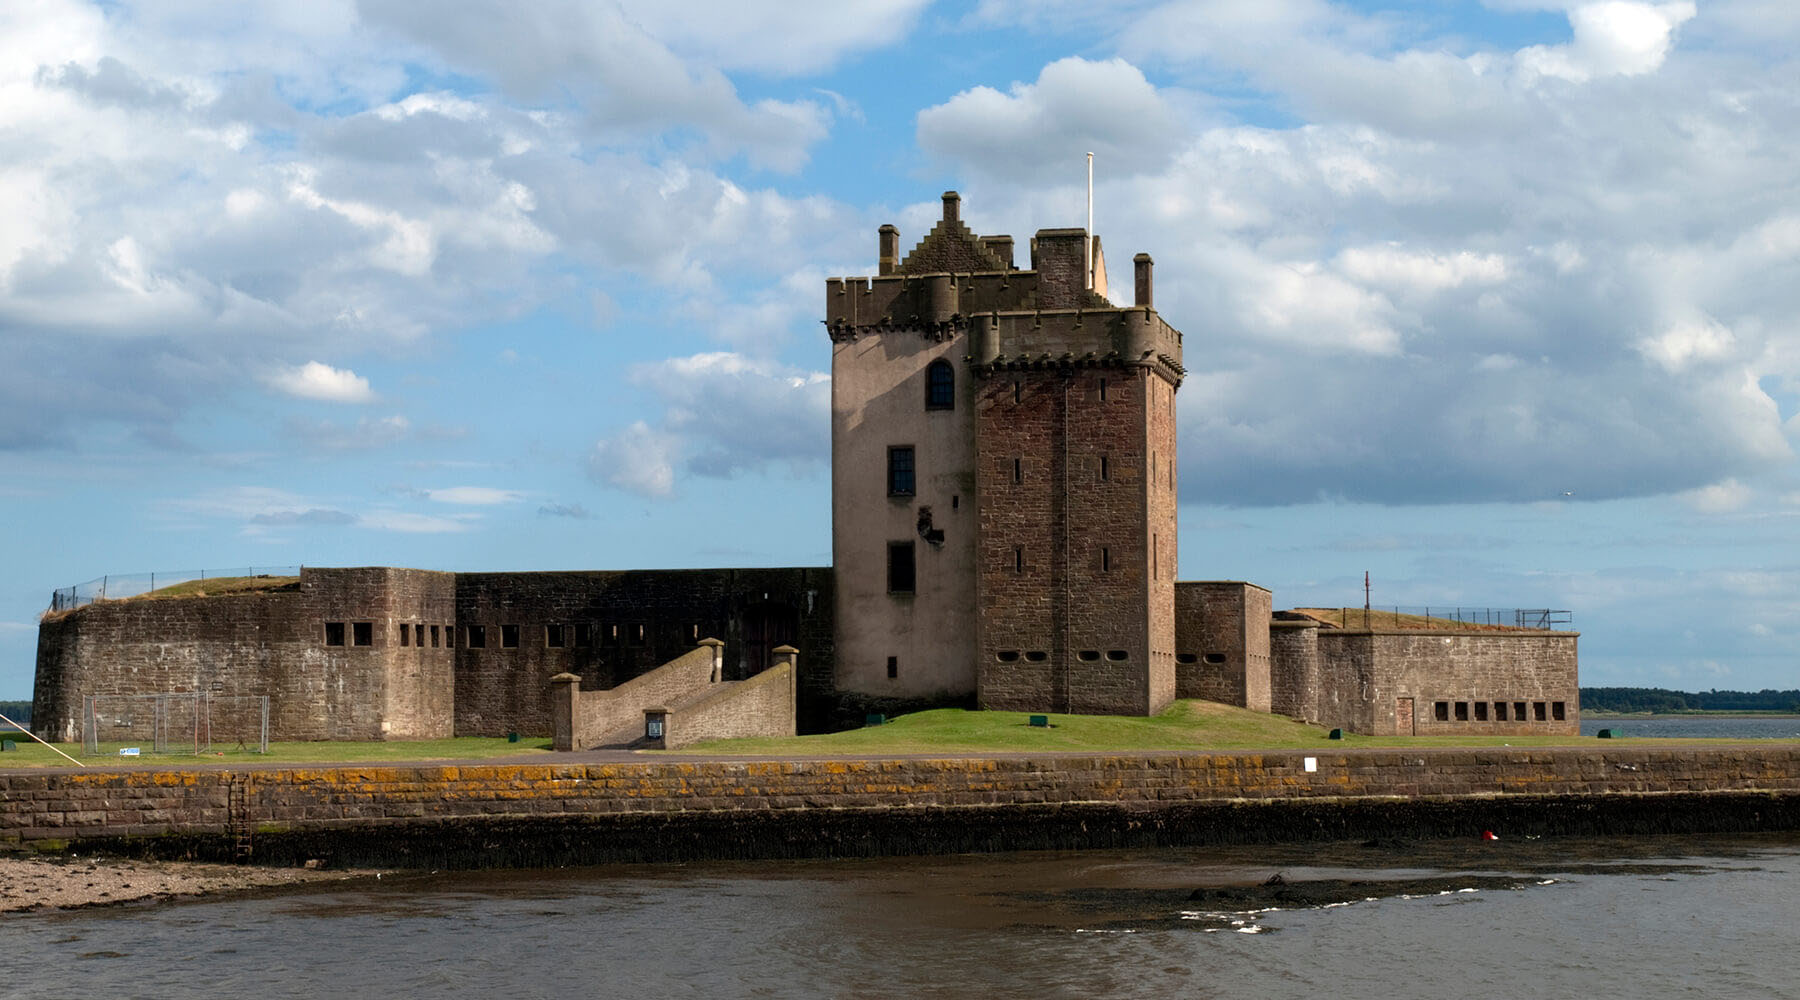 brown concrete castle near body of water under white cloudy sky in daytime in dundee scotland